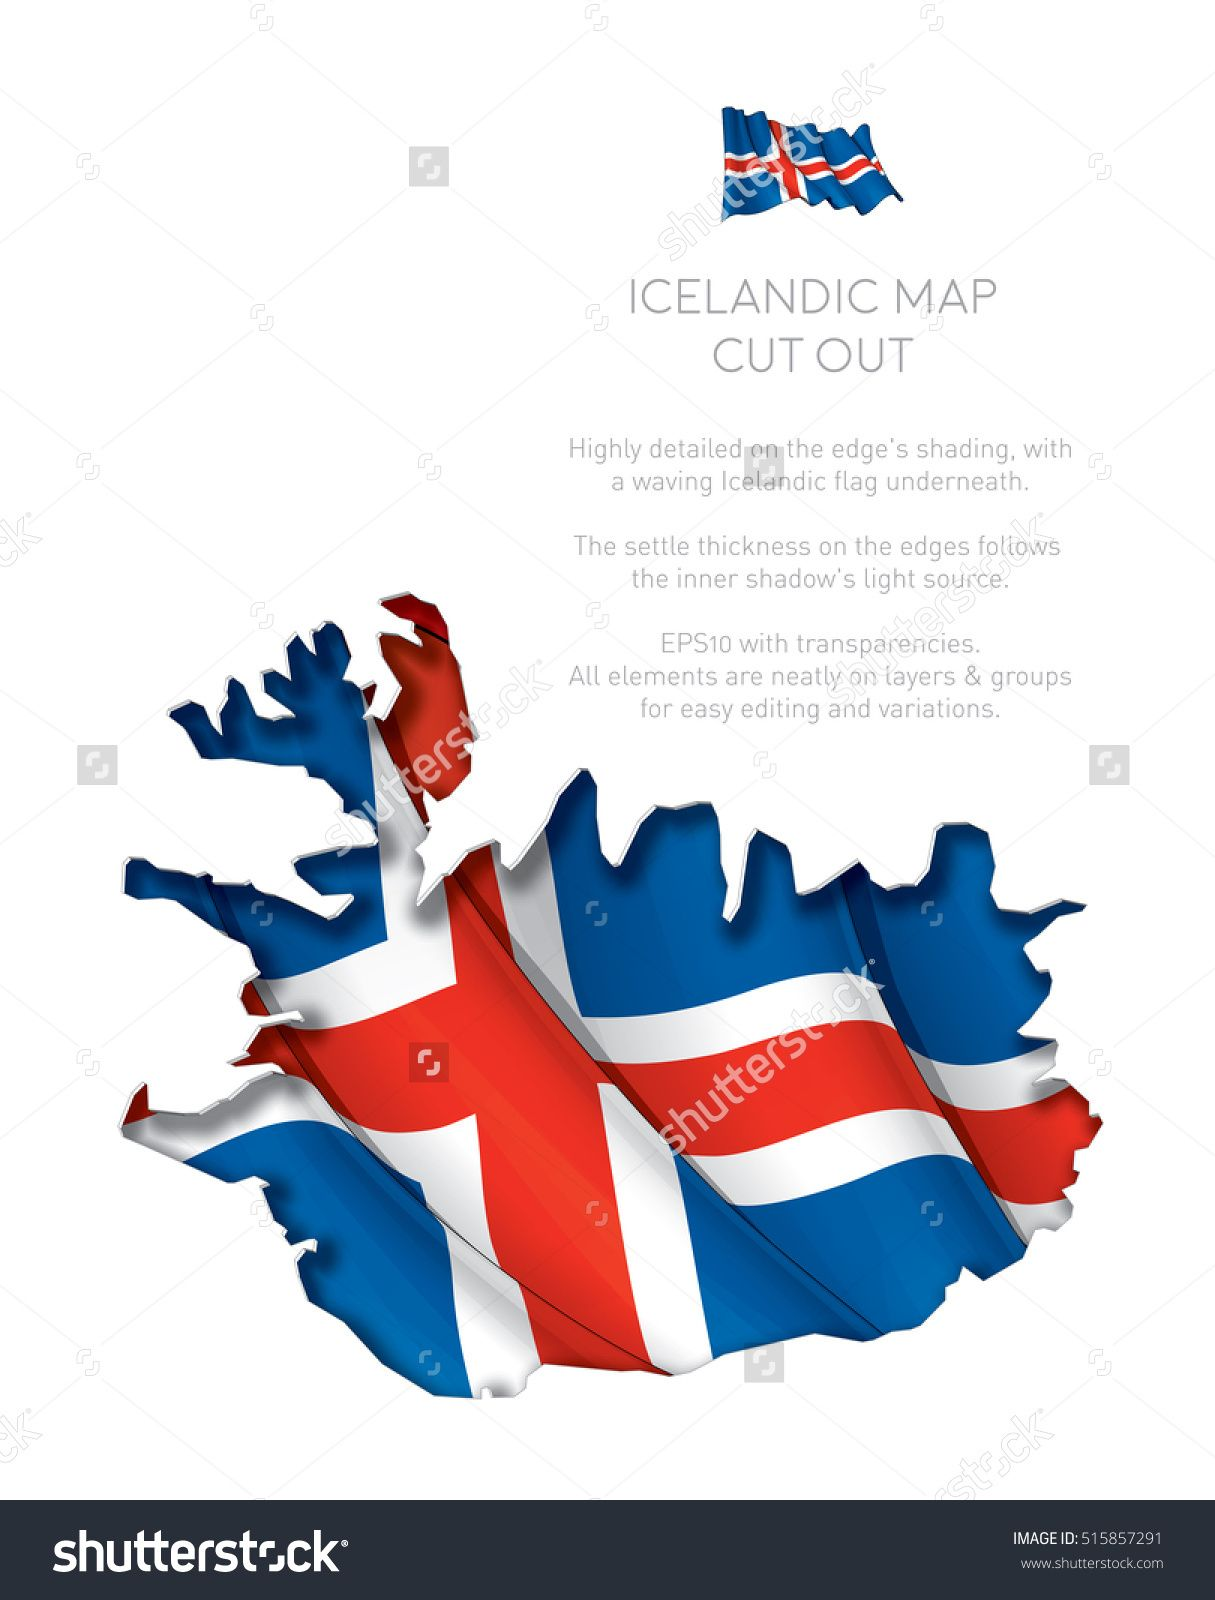 Vector Illustration of a cut out Map of Iceland with a waving ...